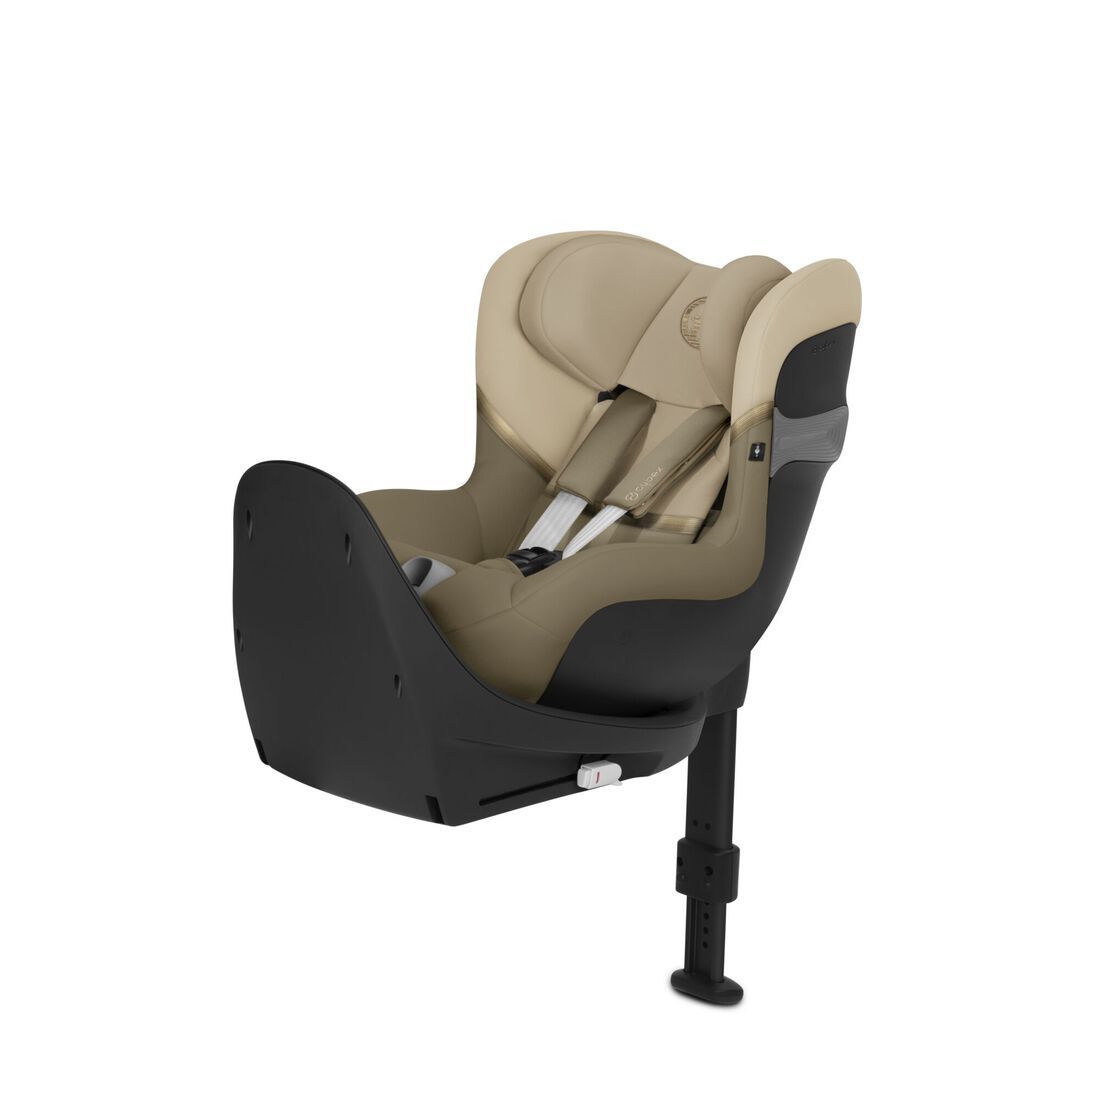 CYBEX Sirona S2 i-Size - Classic Beige in Classic Beige large image number 1